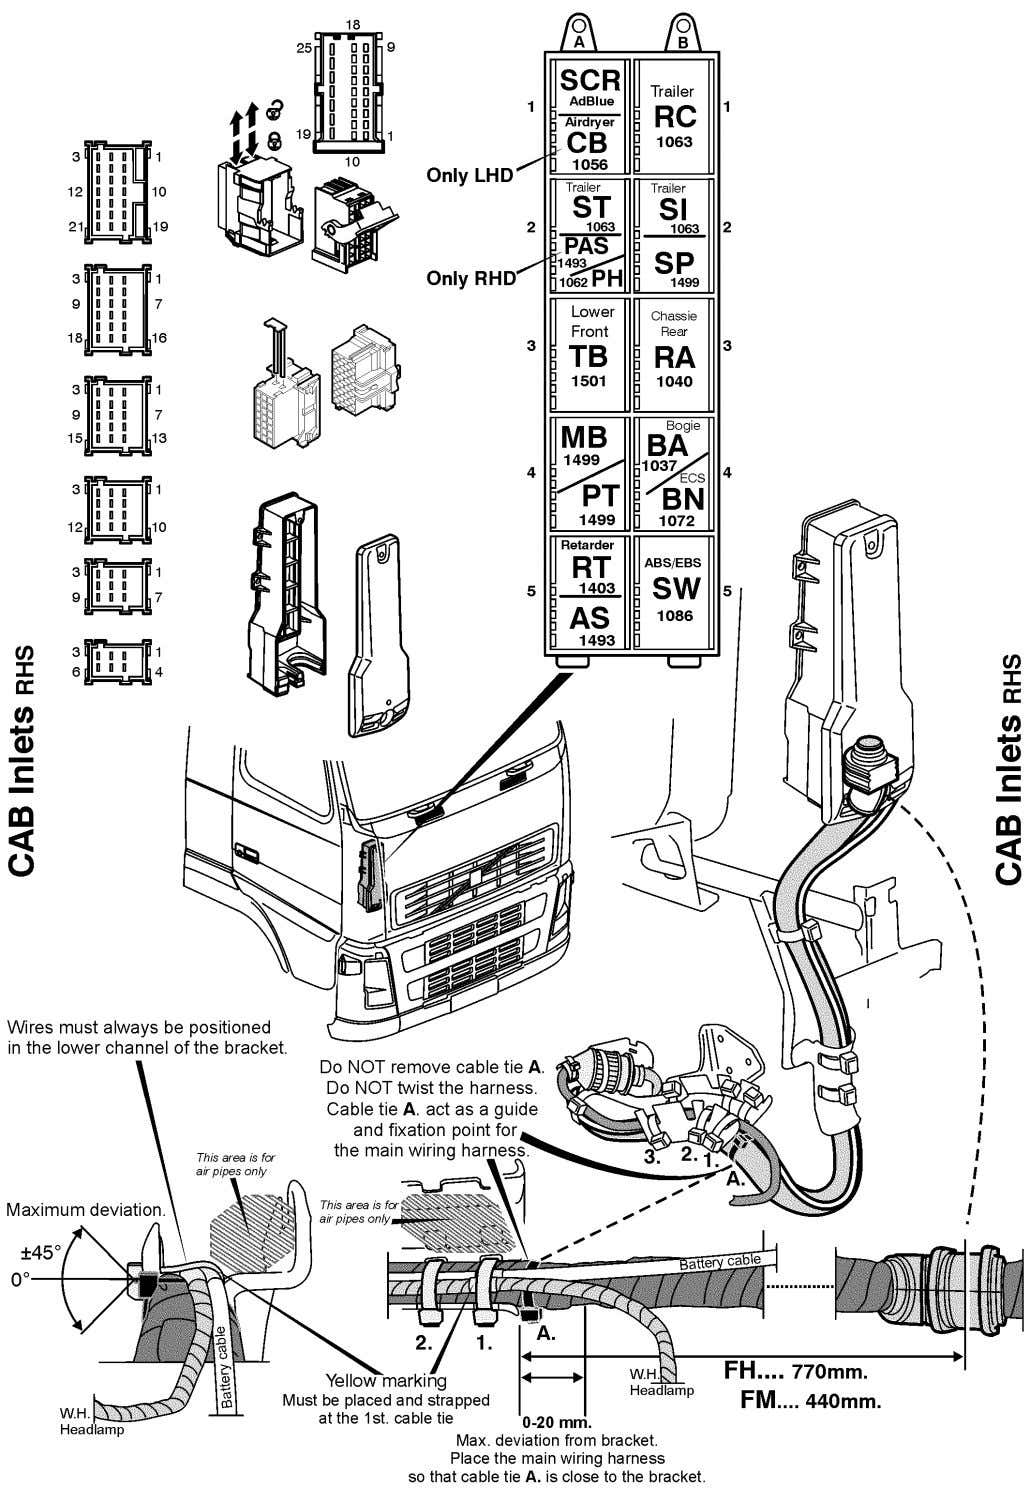 T3060169 Page 130 (298) Wiring diagram